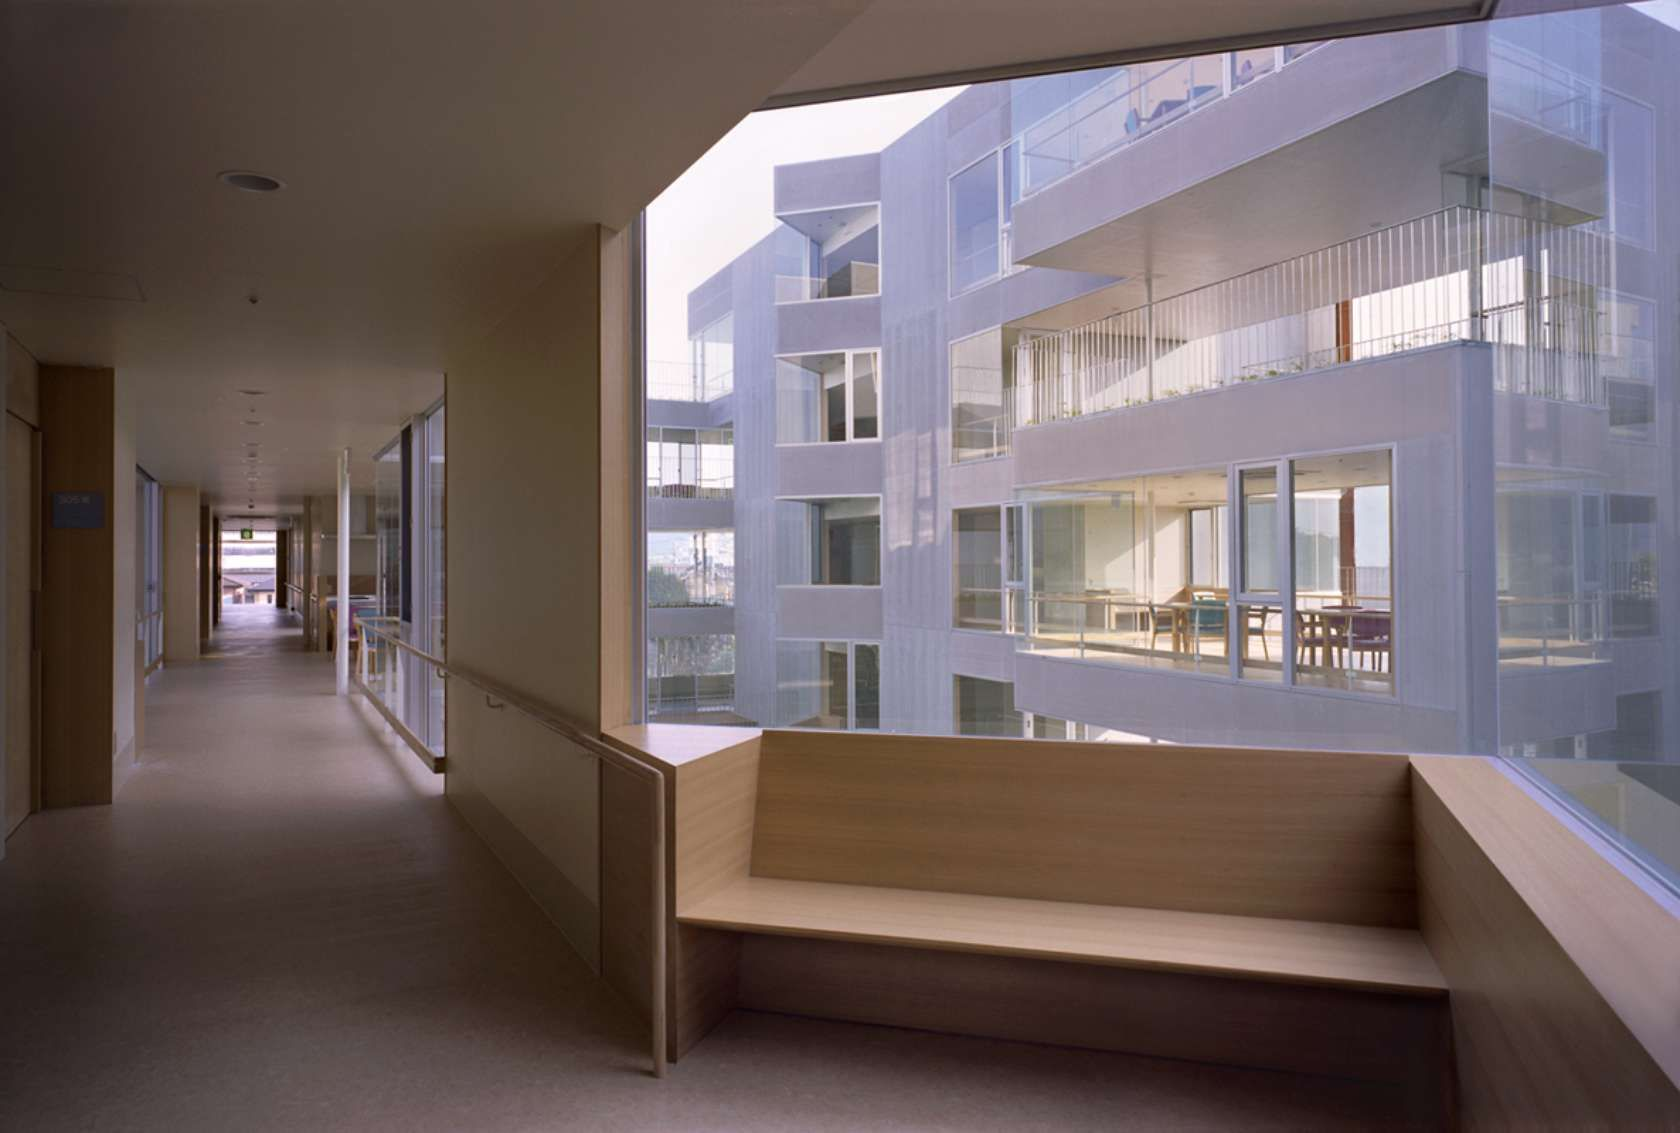 idu terrace nursing home for the elderly this project aspires to